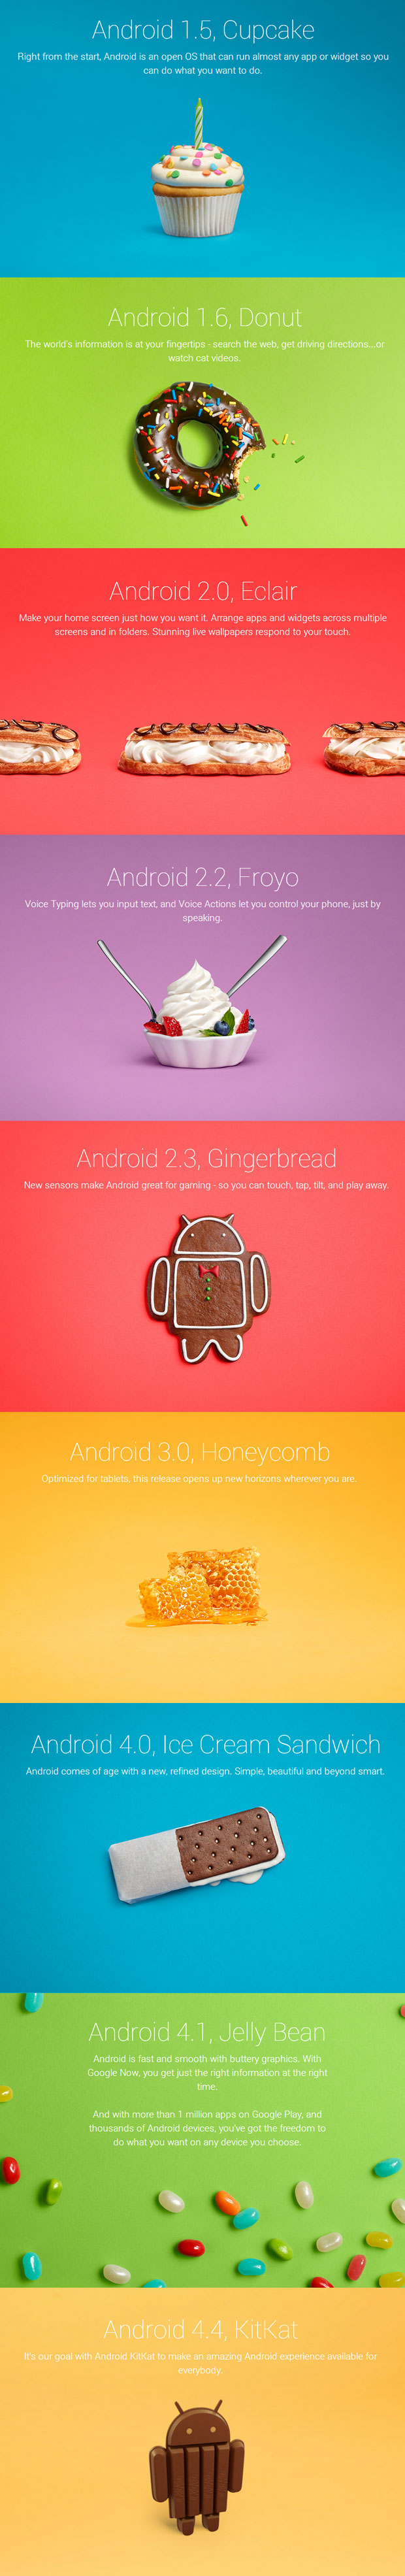 Android Versions to KitKat